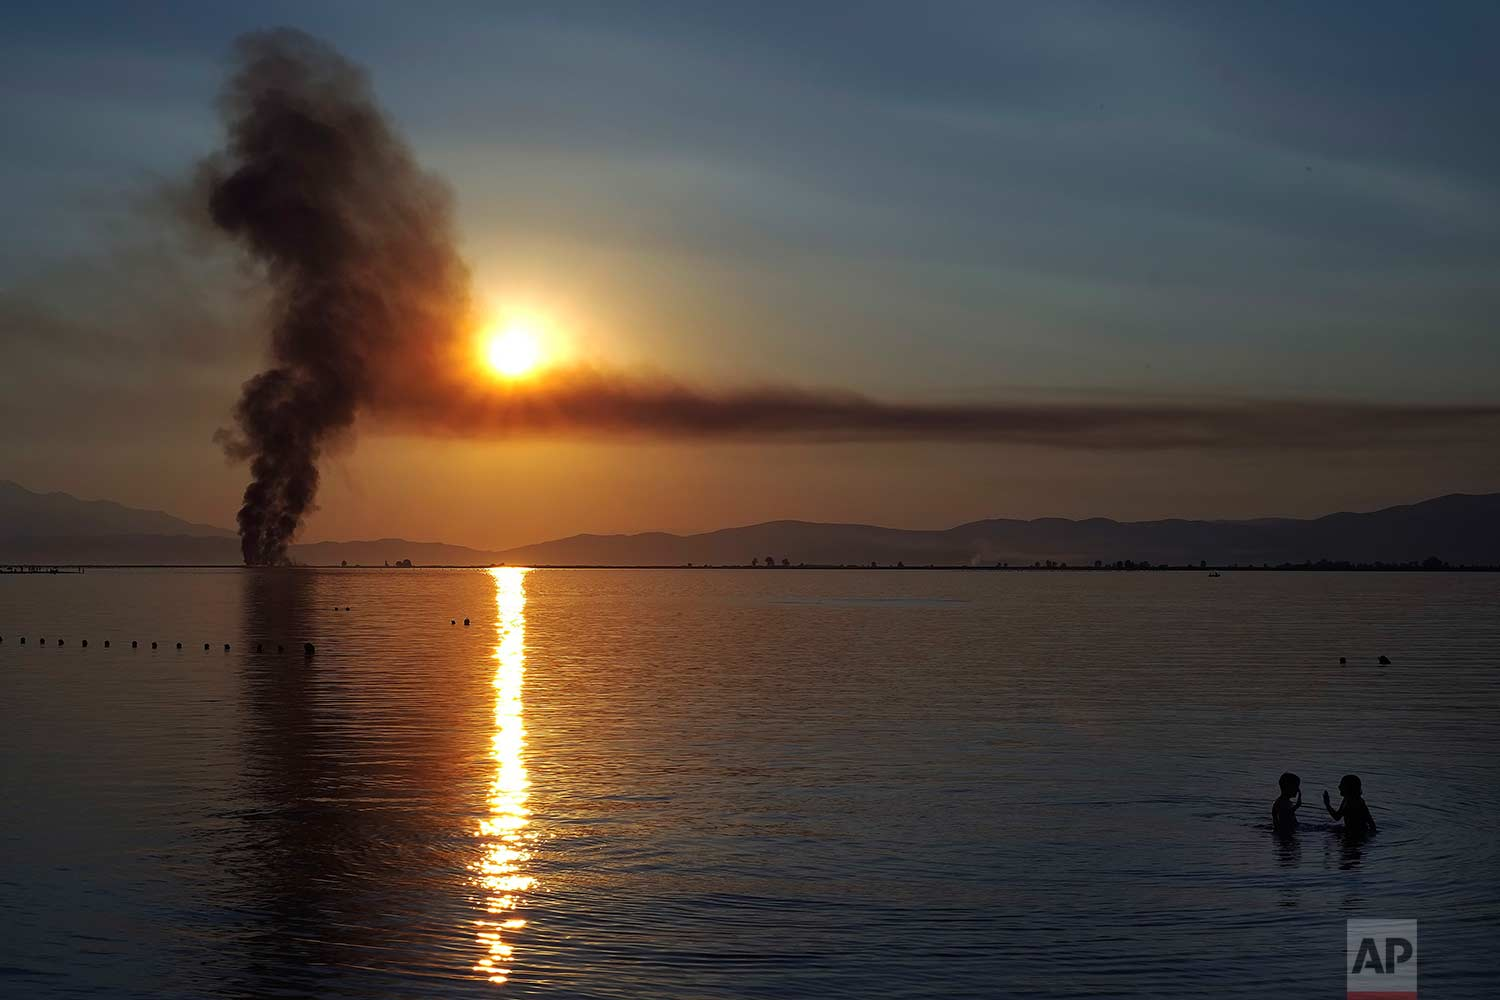 Children play in the sea as smoke from a fire rises in the background during a sunset at Keramoti, northern Greece, on Sunday, July 30, 2017. (AP Photo/Petros Karadjias)